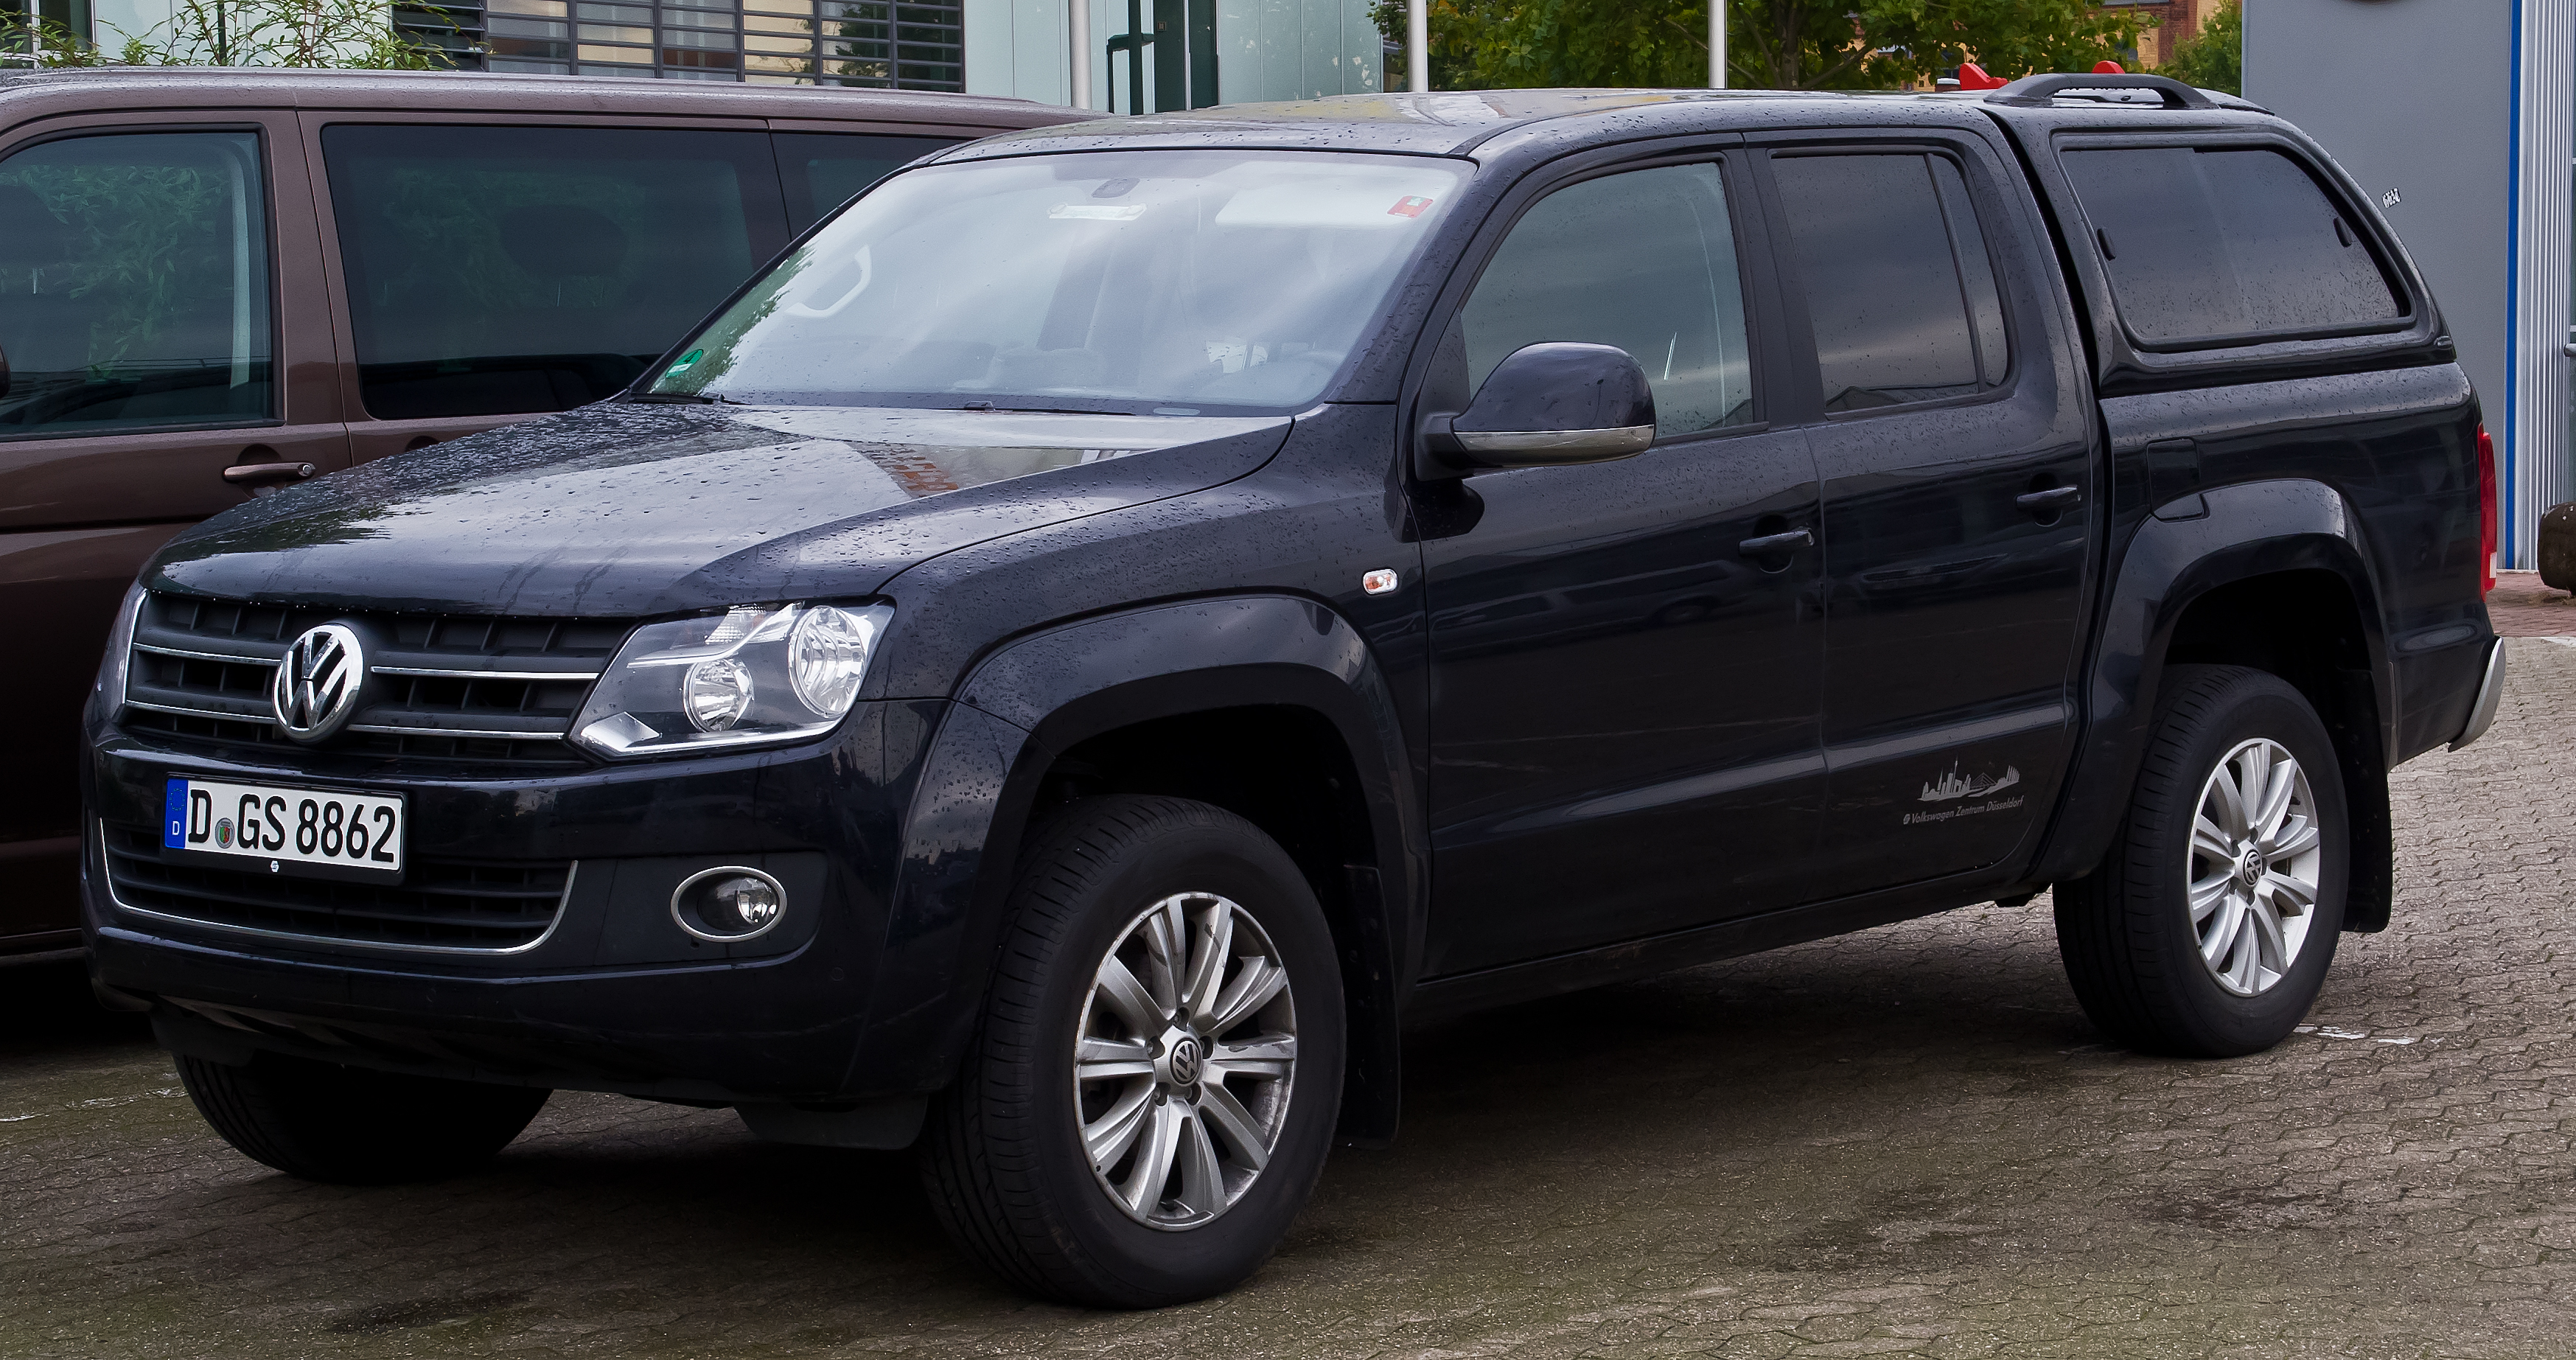 Vw Amarok Modified >> File:VW Amarok 2.0 TDI 4MOTION DC Highline – Frontansicht ...